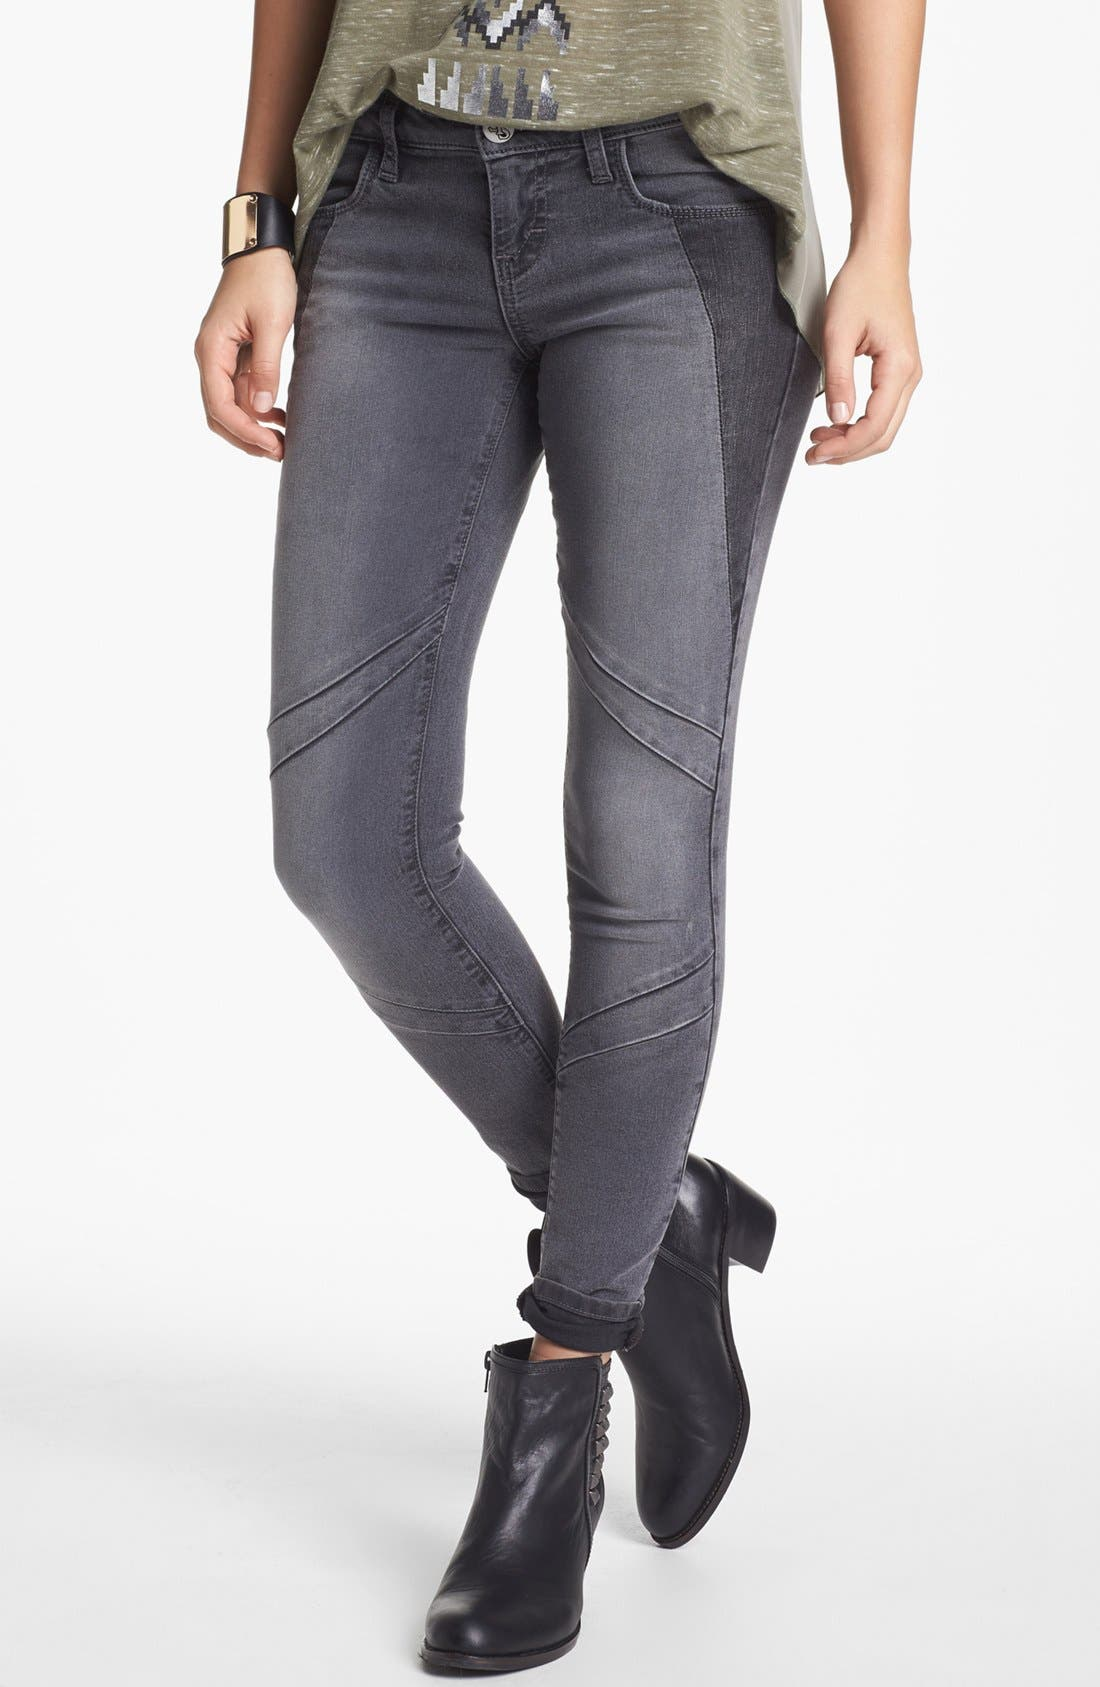 Alternate Image 1 Selected - STS Blue Moto Skinny Jeans (Grey) (Juniors)